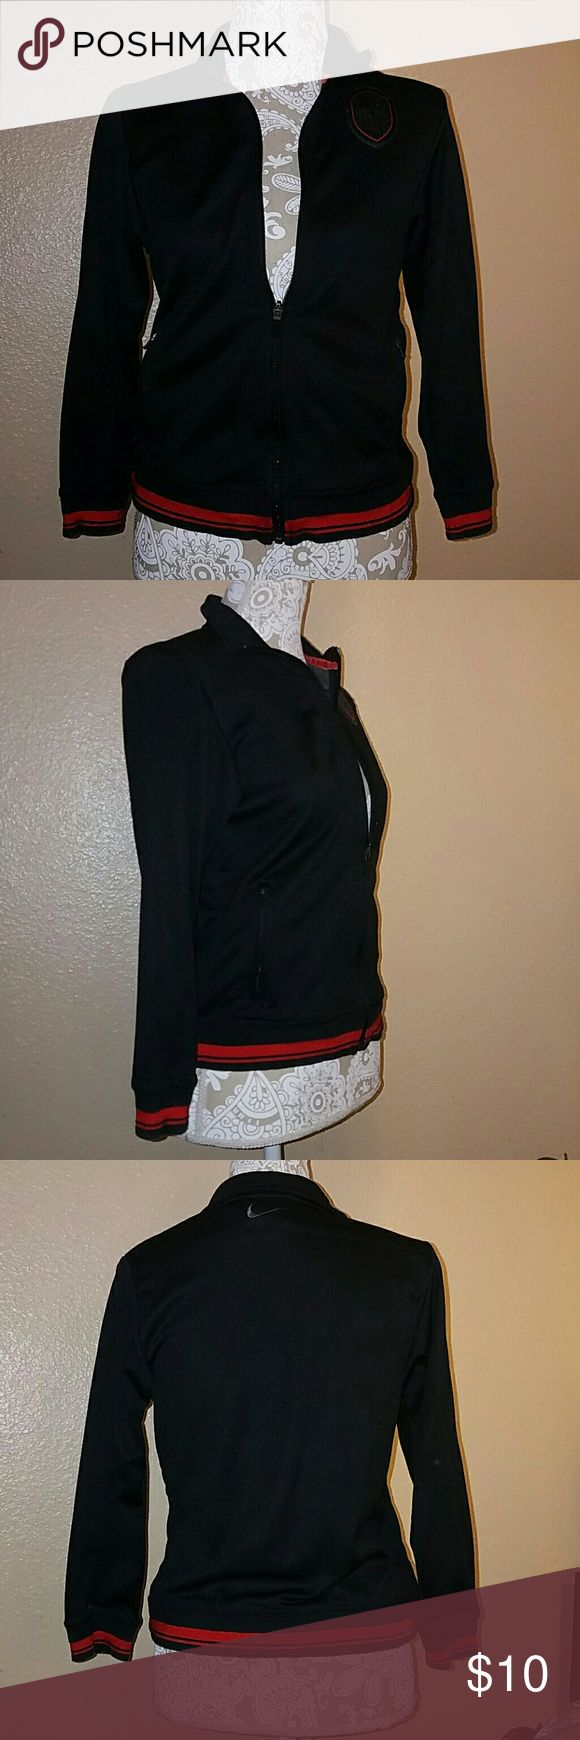 Nike Track Jacket This is a used Nike track jacket in medium size :) Great for women who spend a lot of time in the gym! Nike Jackets & Coats